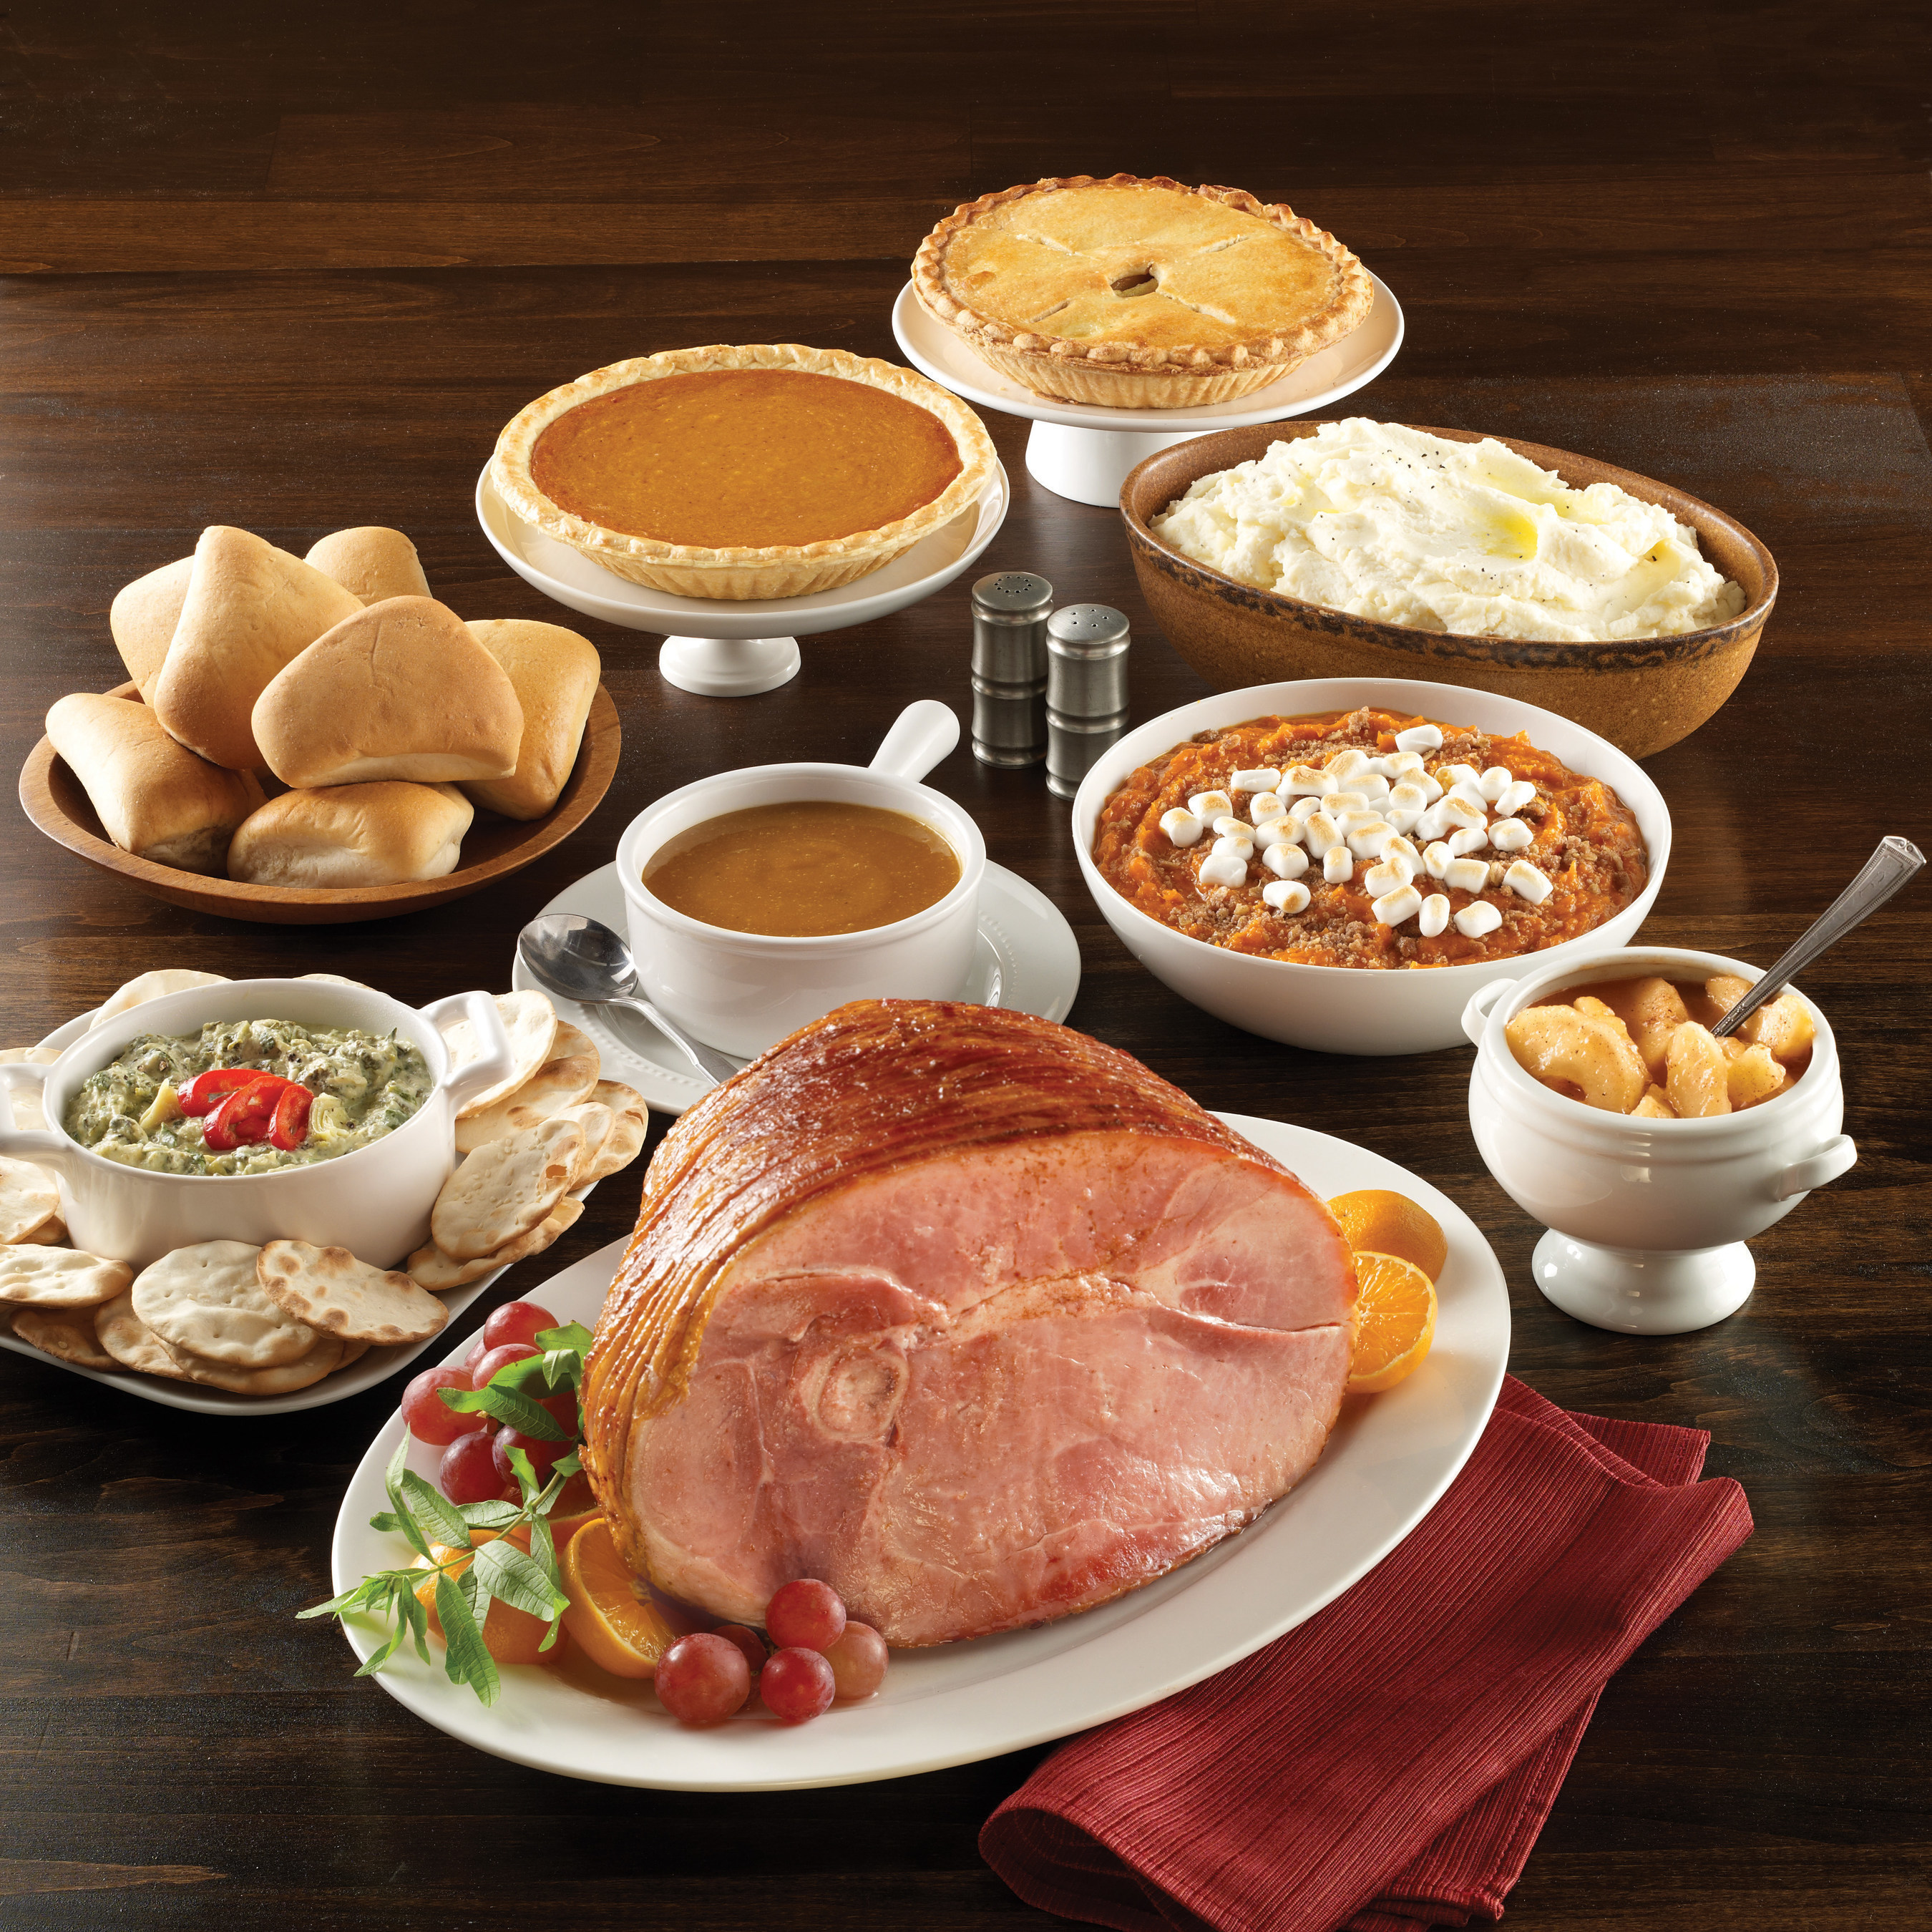 Thanksgiving catering offerings from Boston Market vary and start at $10.29 per person. Guests can choose from boneless honey glazed ham, boneless roasted turkey or signature rotisserie chicken with a choice of sides and a pie.